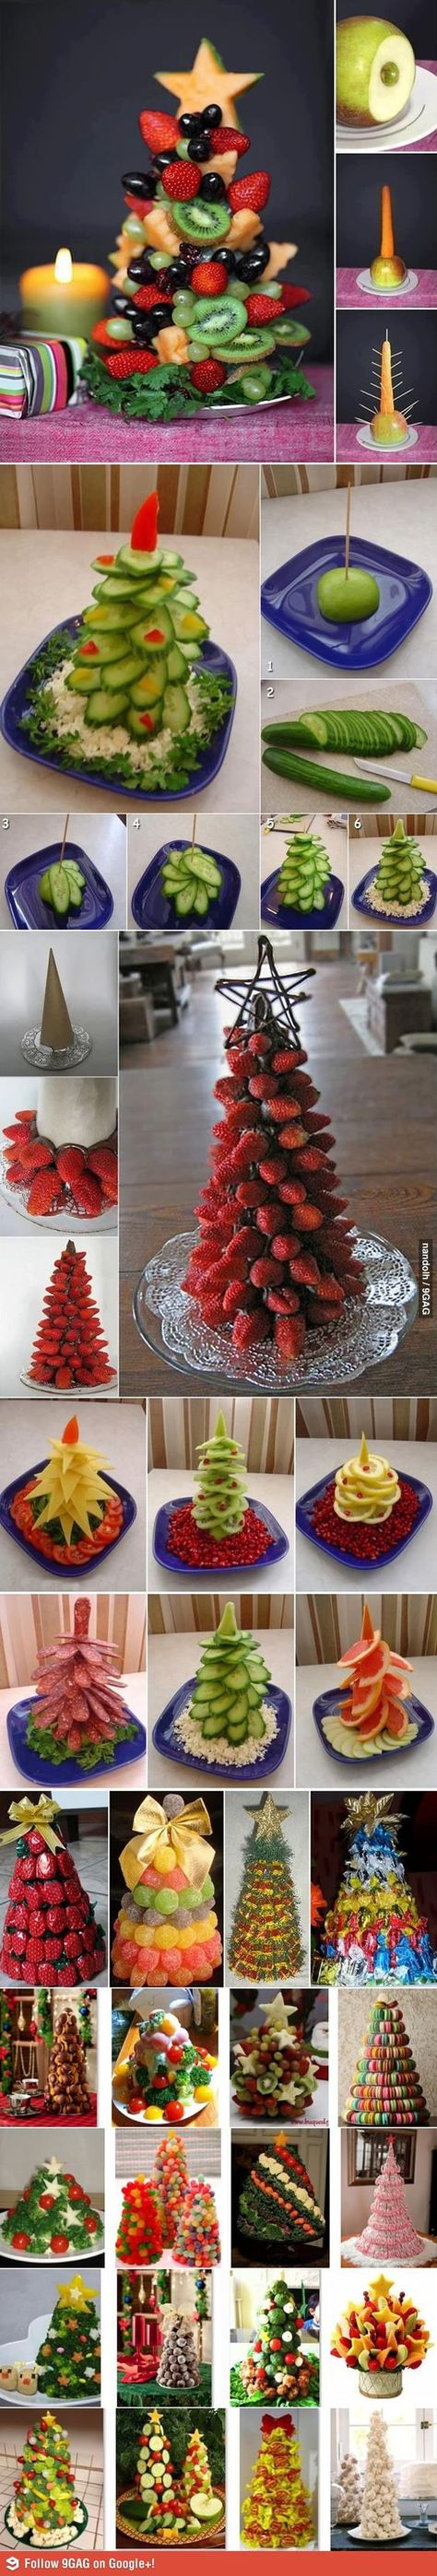 """I heard you like Christmas trees"" Ooh there's a recipe for white chocolate dipped strawberries rolled in diff colors sugar! That'd be a pretty fruit tree!:"